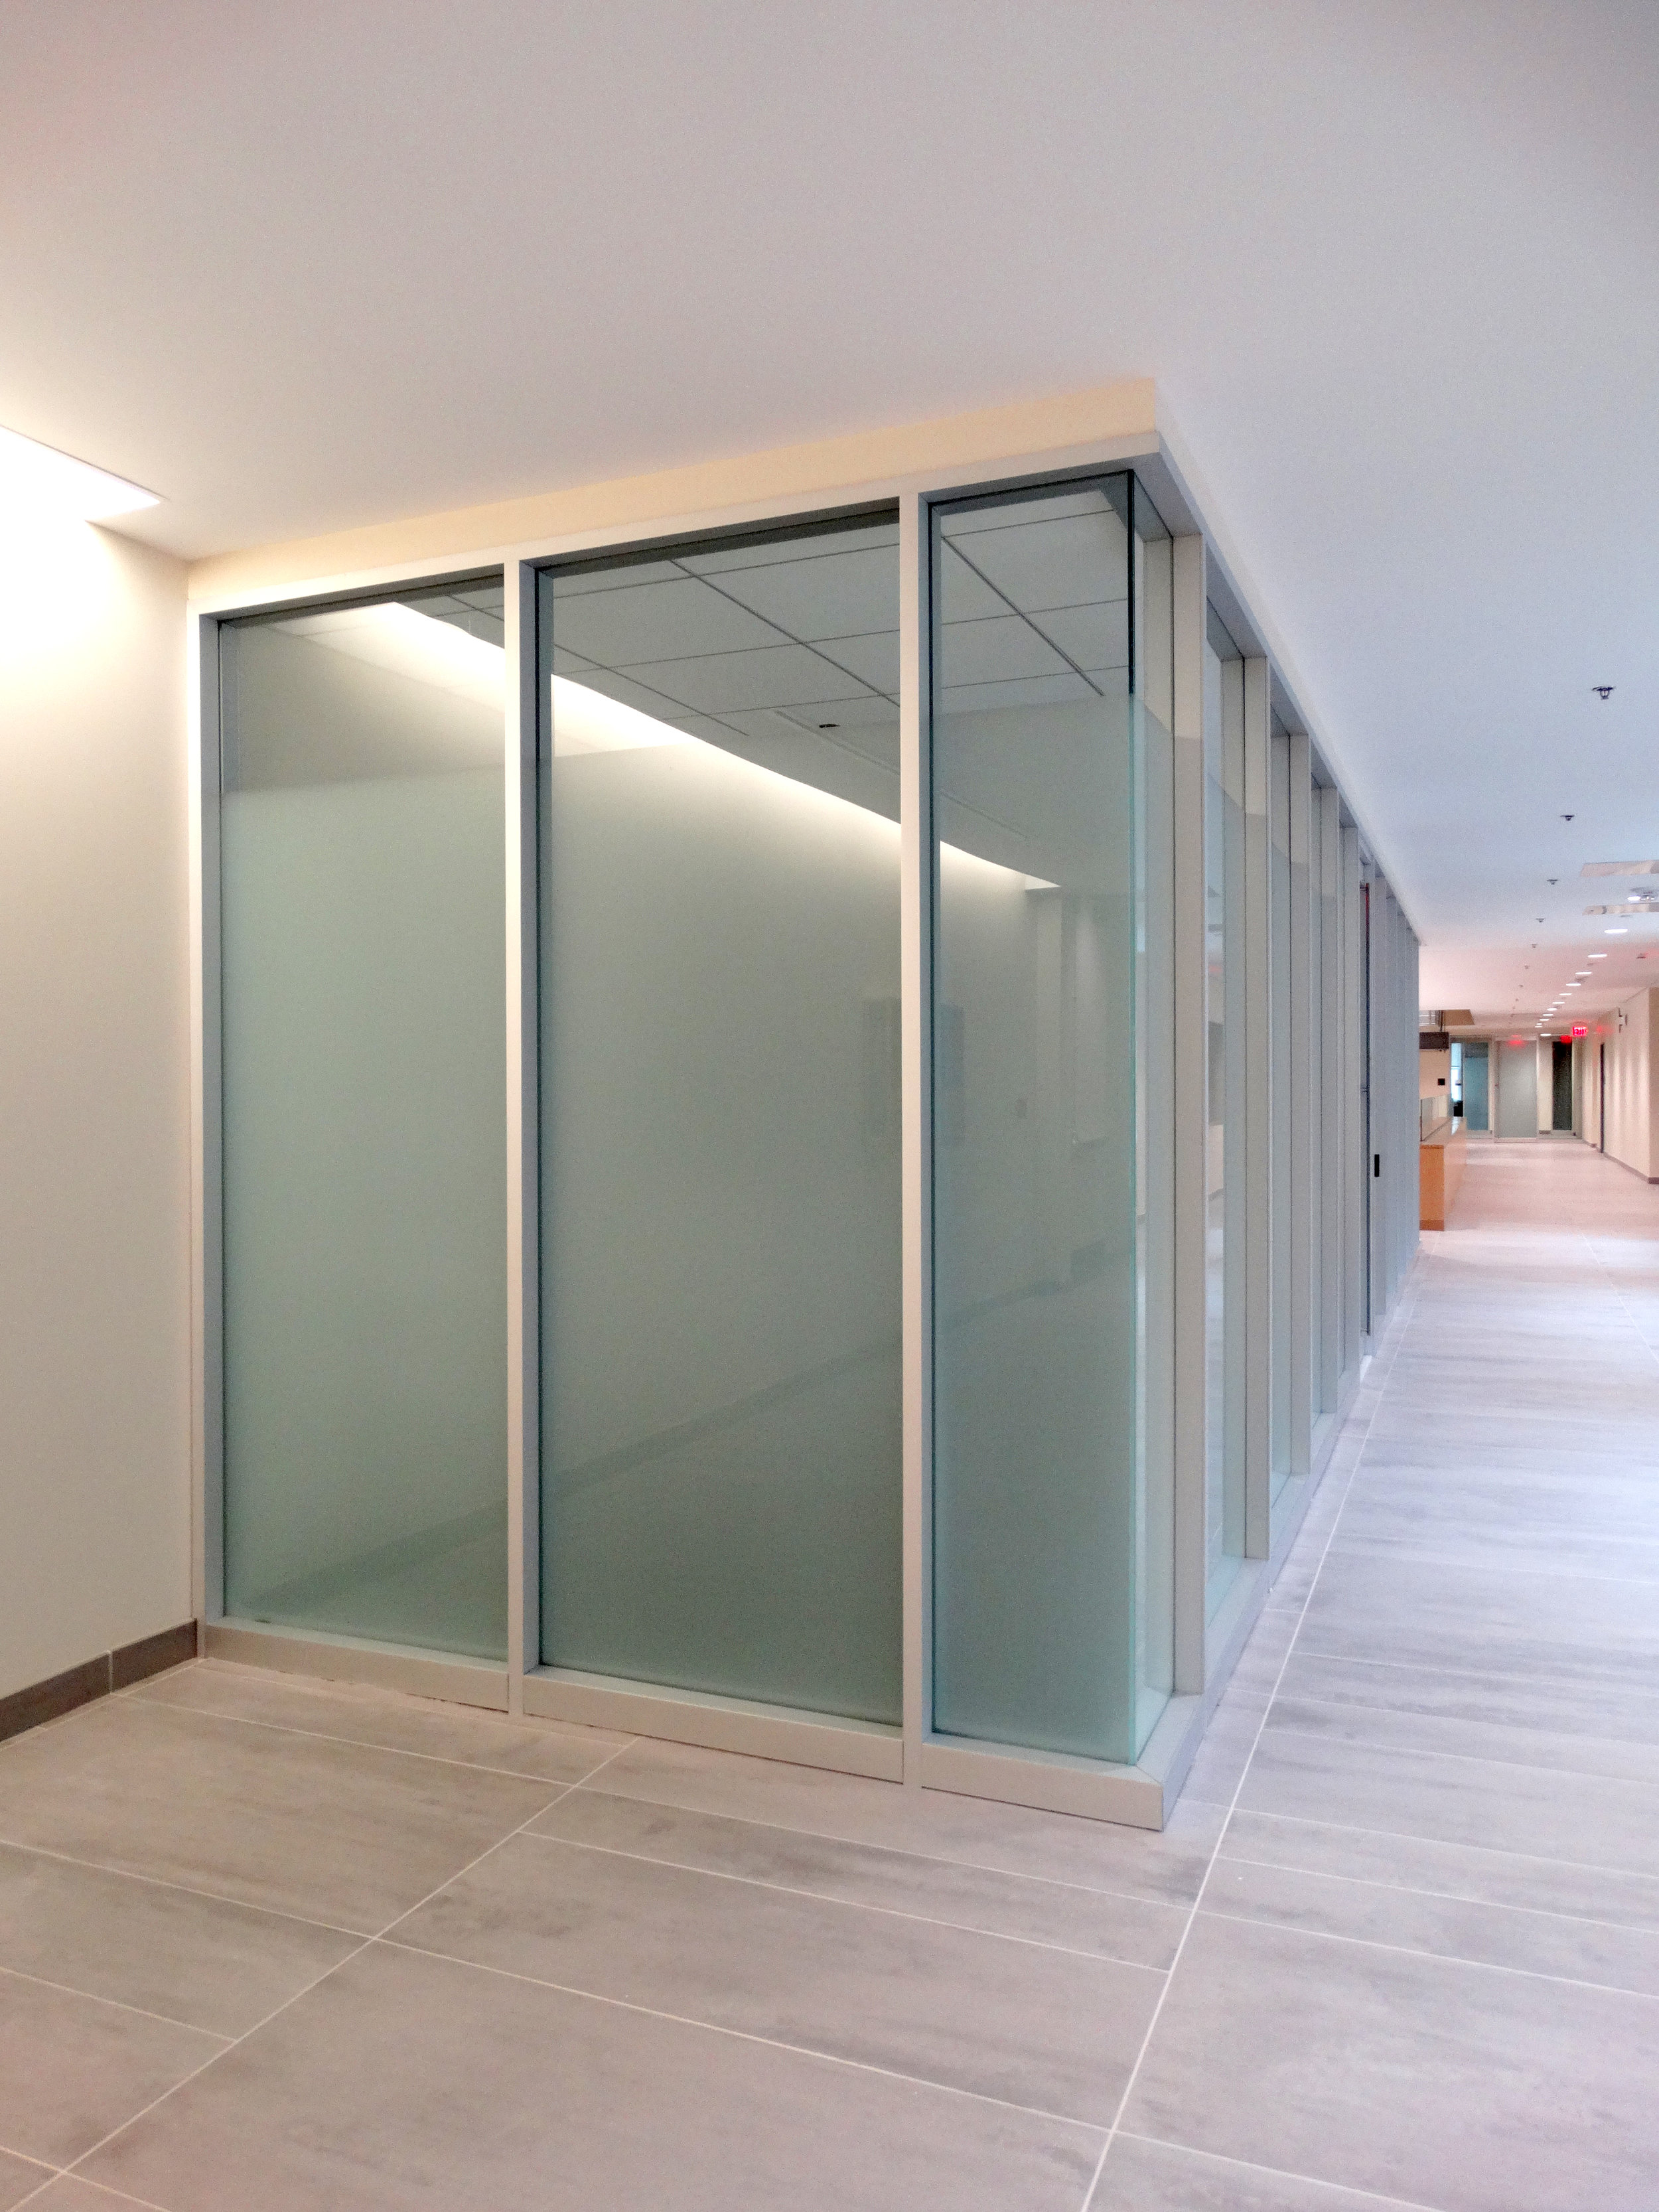 Encase Aluminum Framed Vertical Mullion Corner Turn Glass - Spaceworks AI.jpg